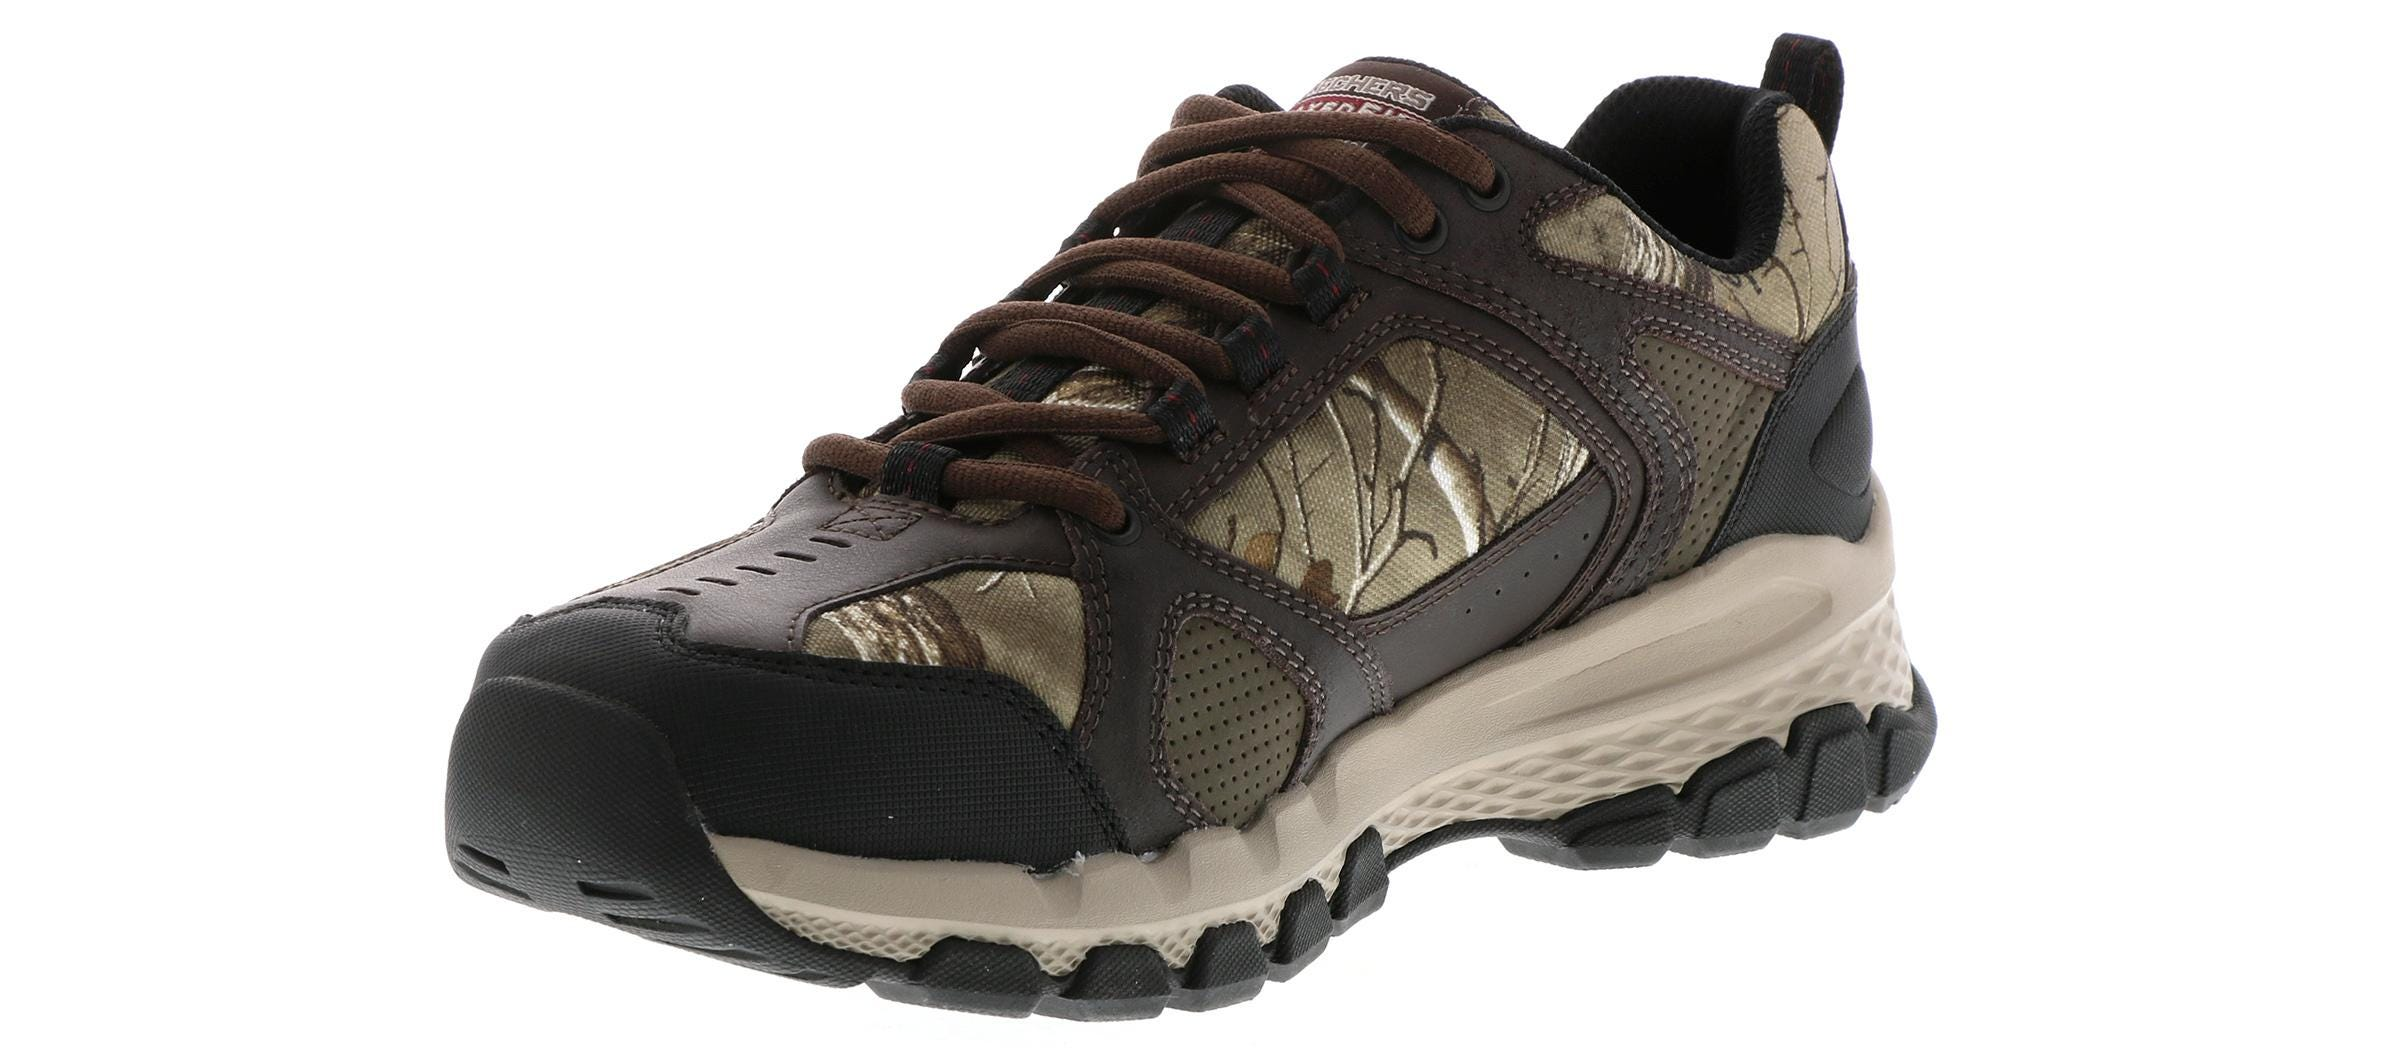 skechers relaxed fit outland 2.0 men's